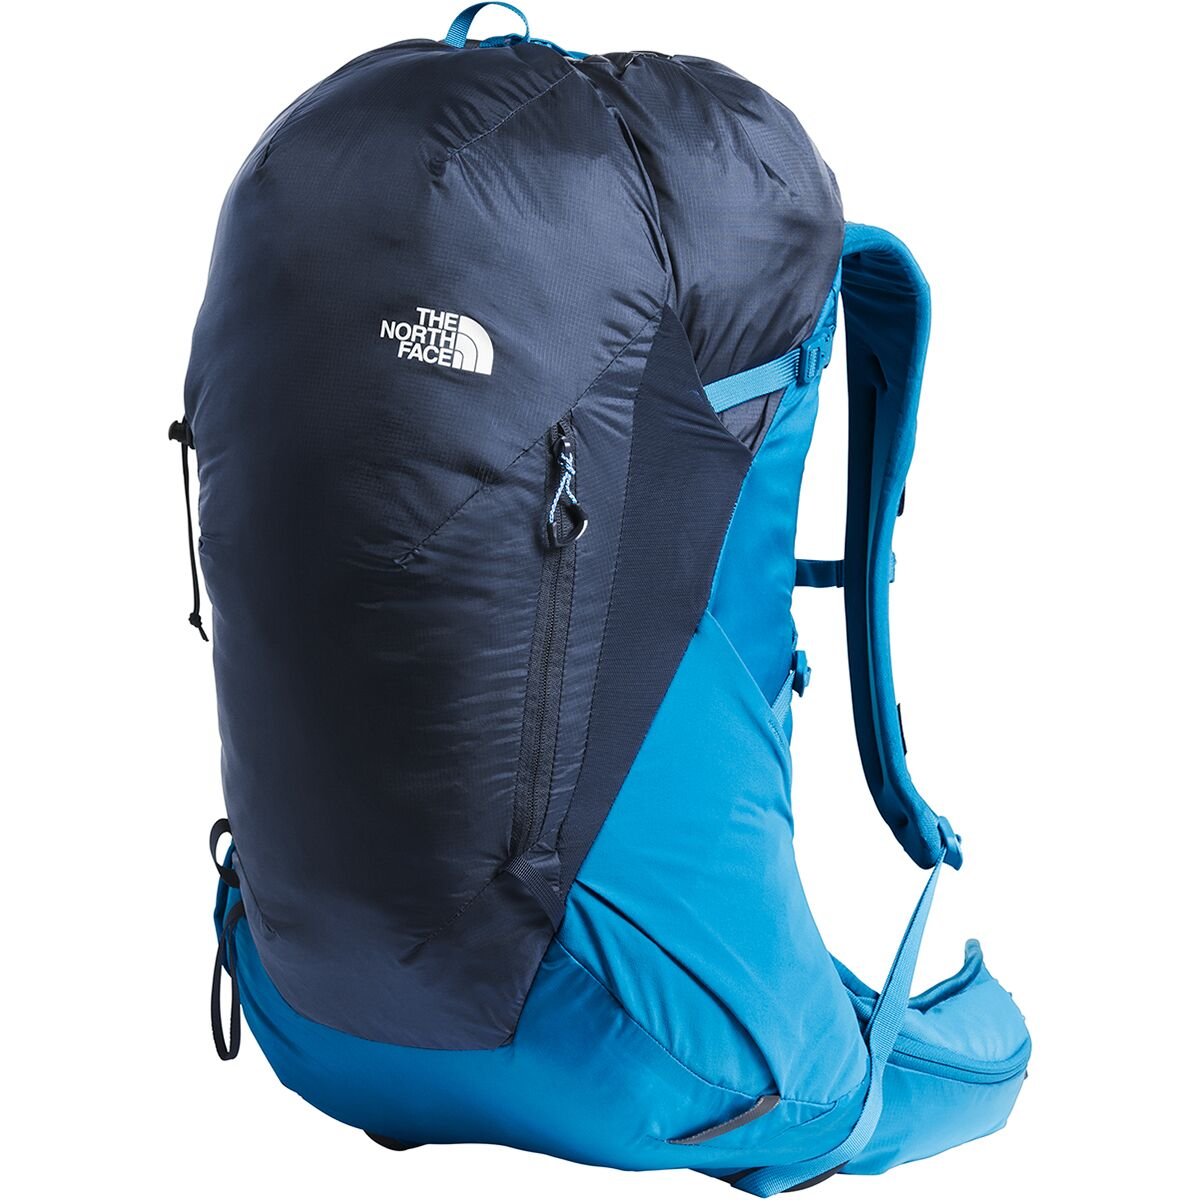 The North Face Hydra 26